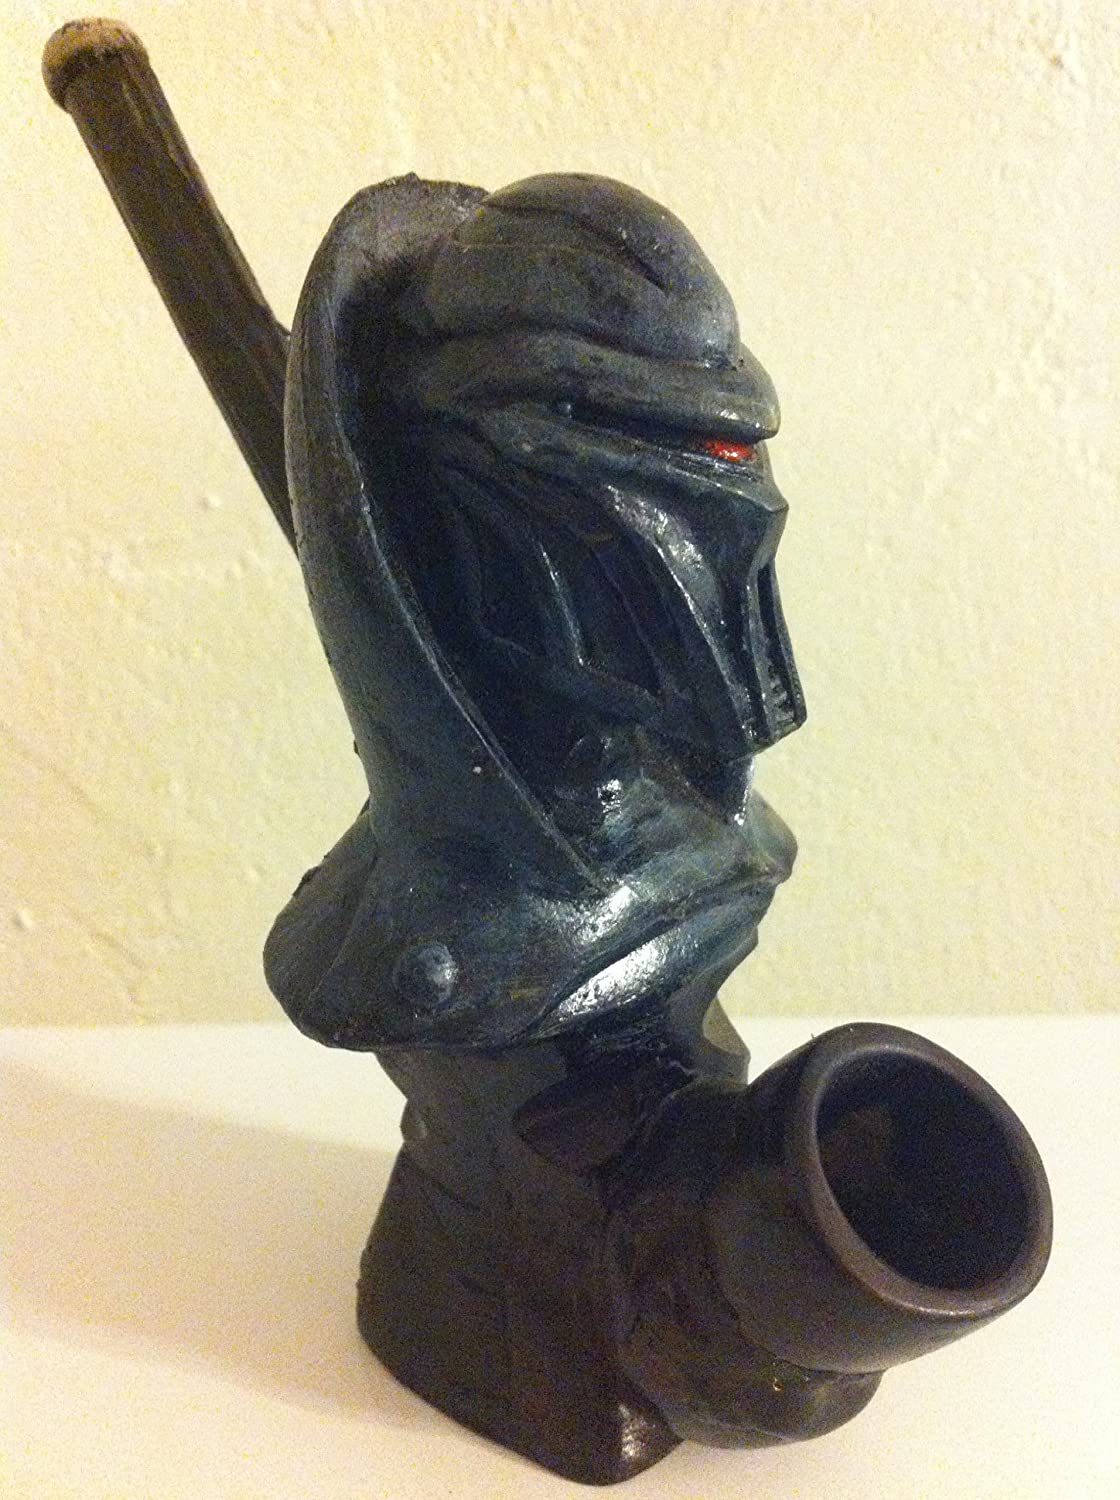 Handmade Tobacco Pipe, Cylons from Battle Star Galatica Design